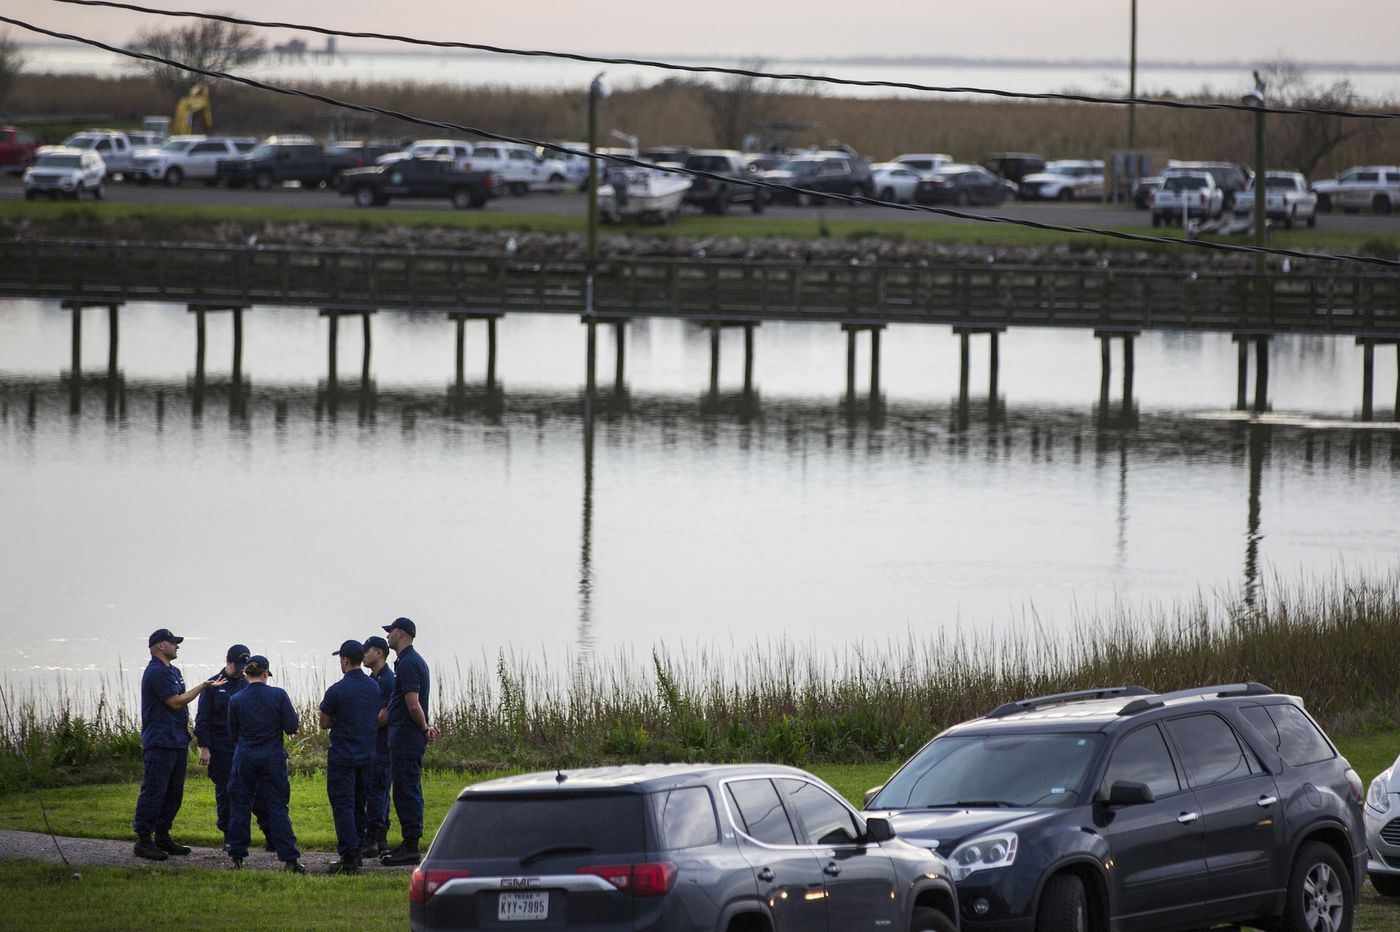 Search Continues For Body At Texas Plane Crash Site